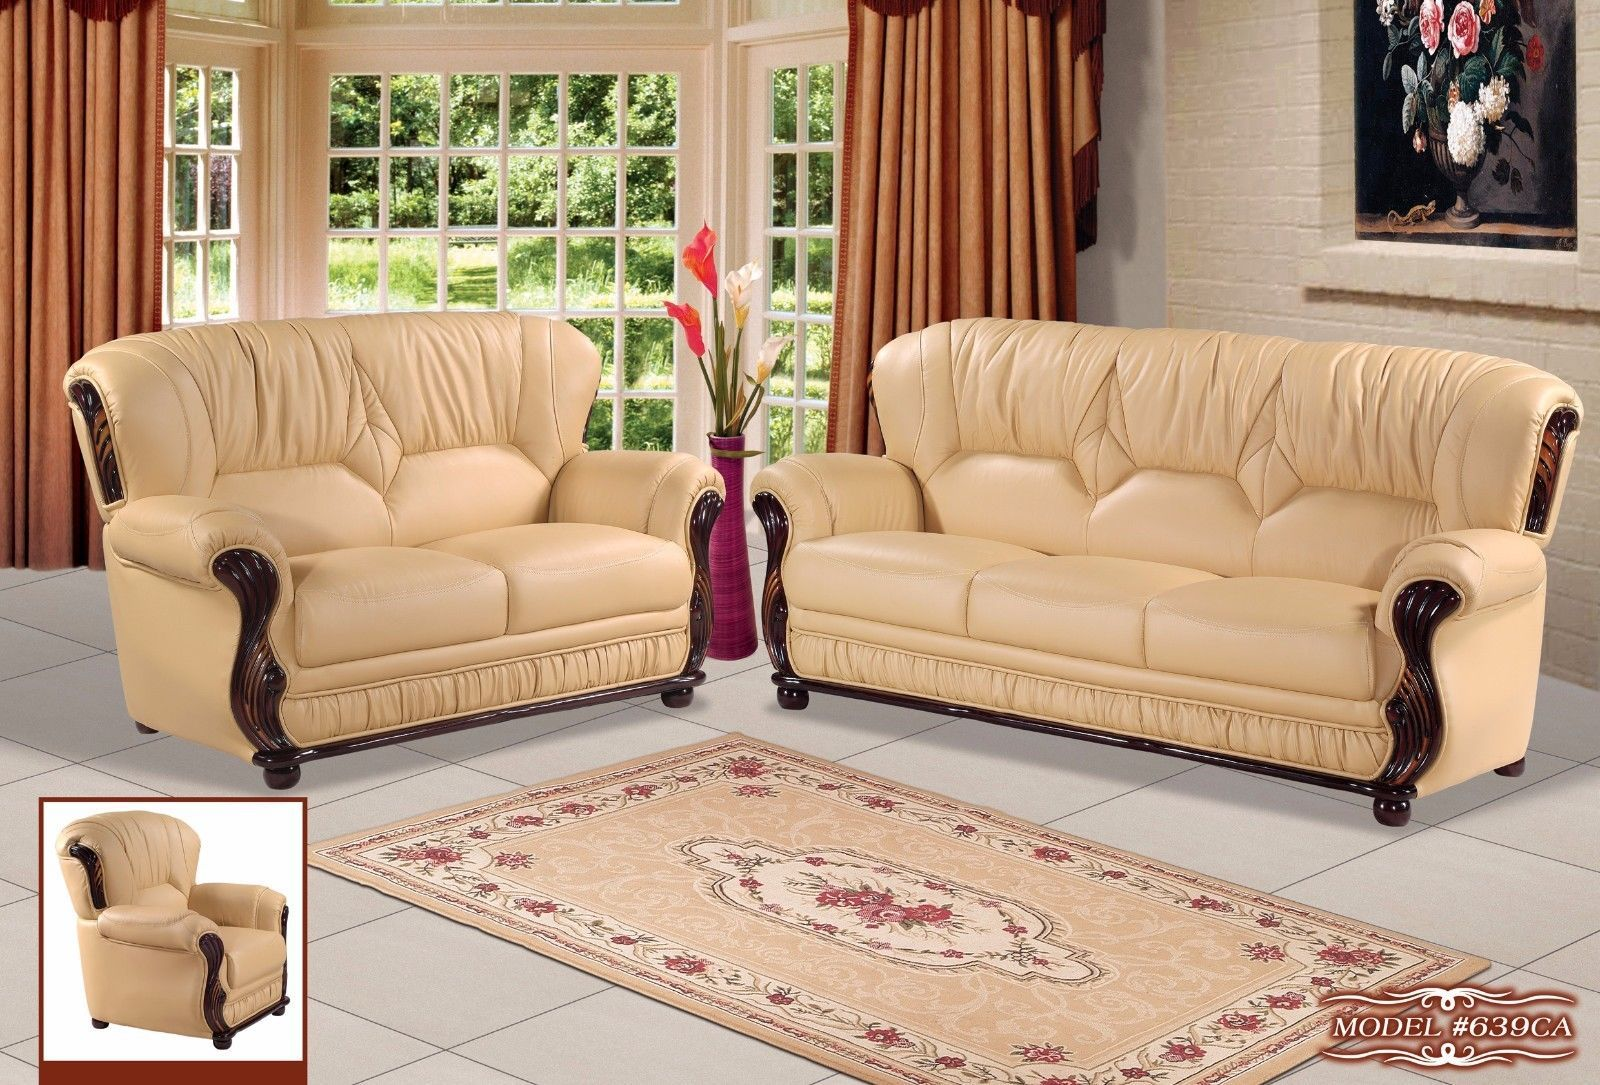 Meridian 639 Mina Living Room Sofa in Cappuccino Bonded Leather Traditional